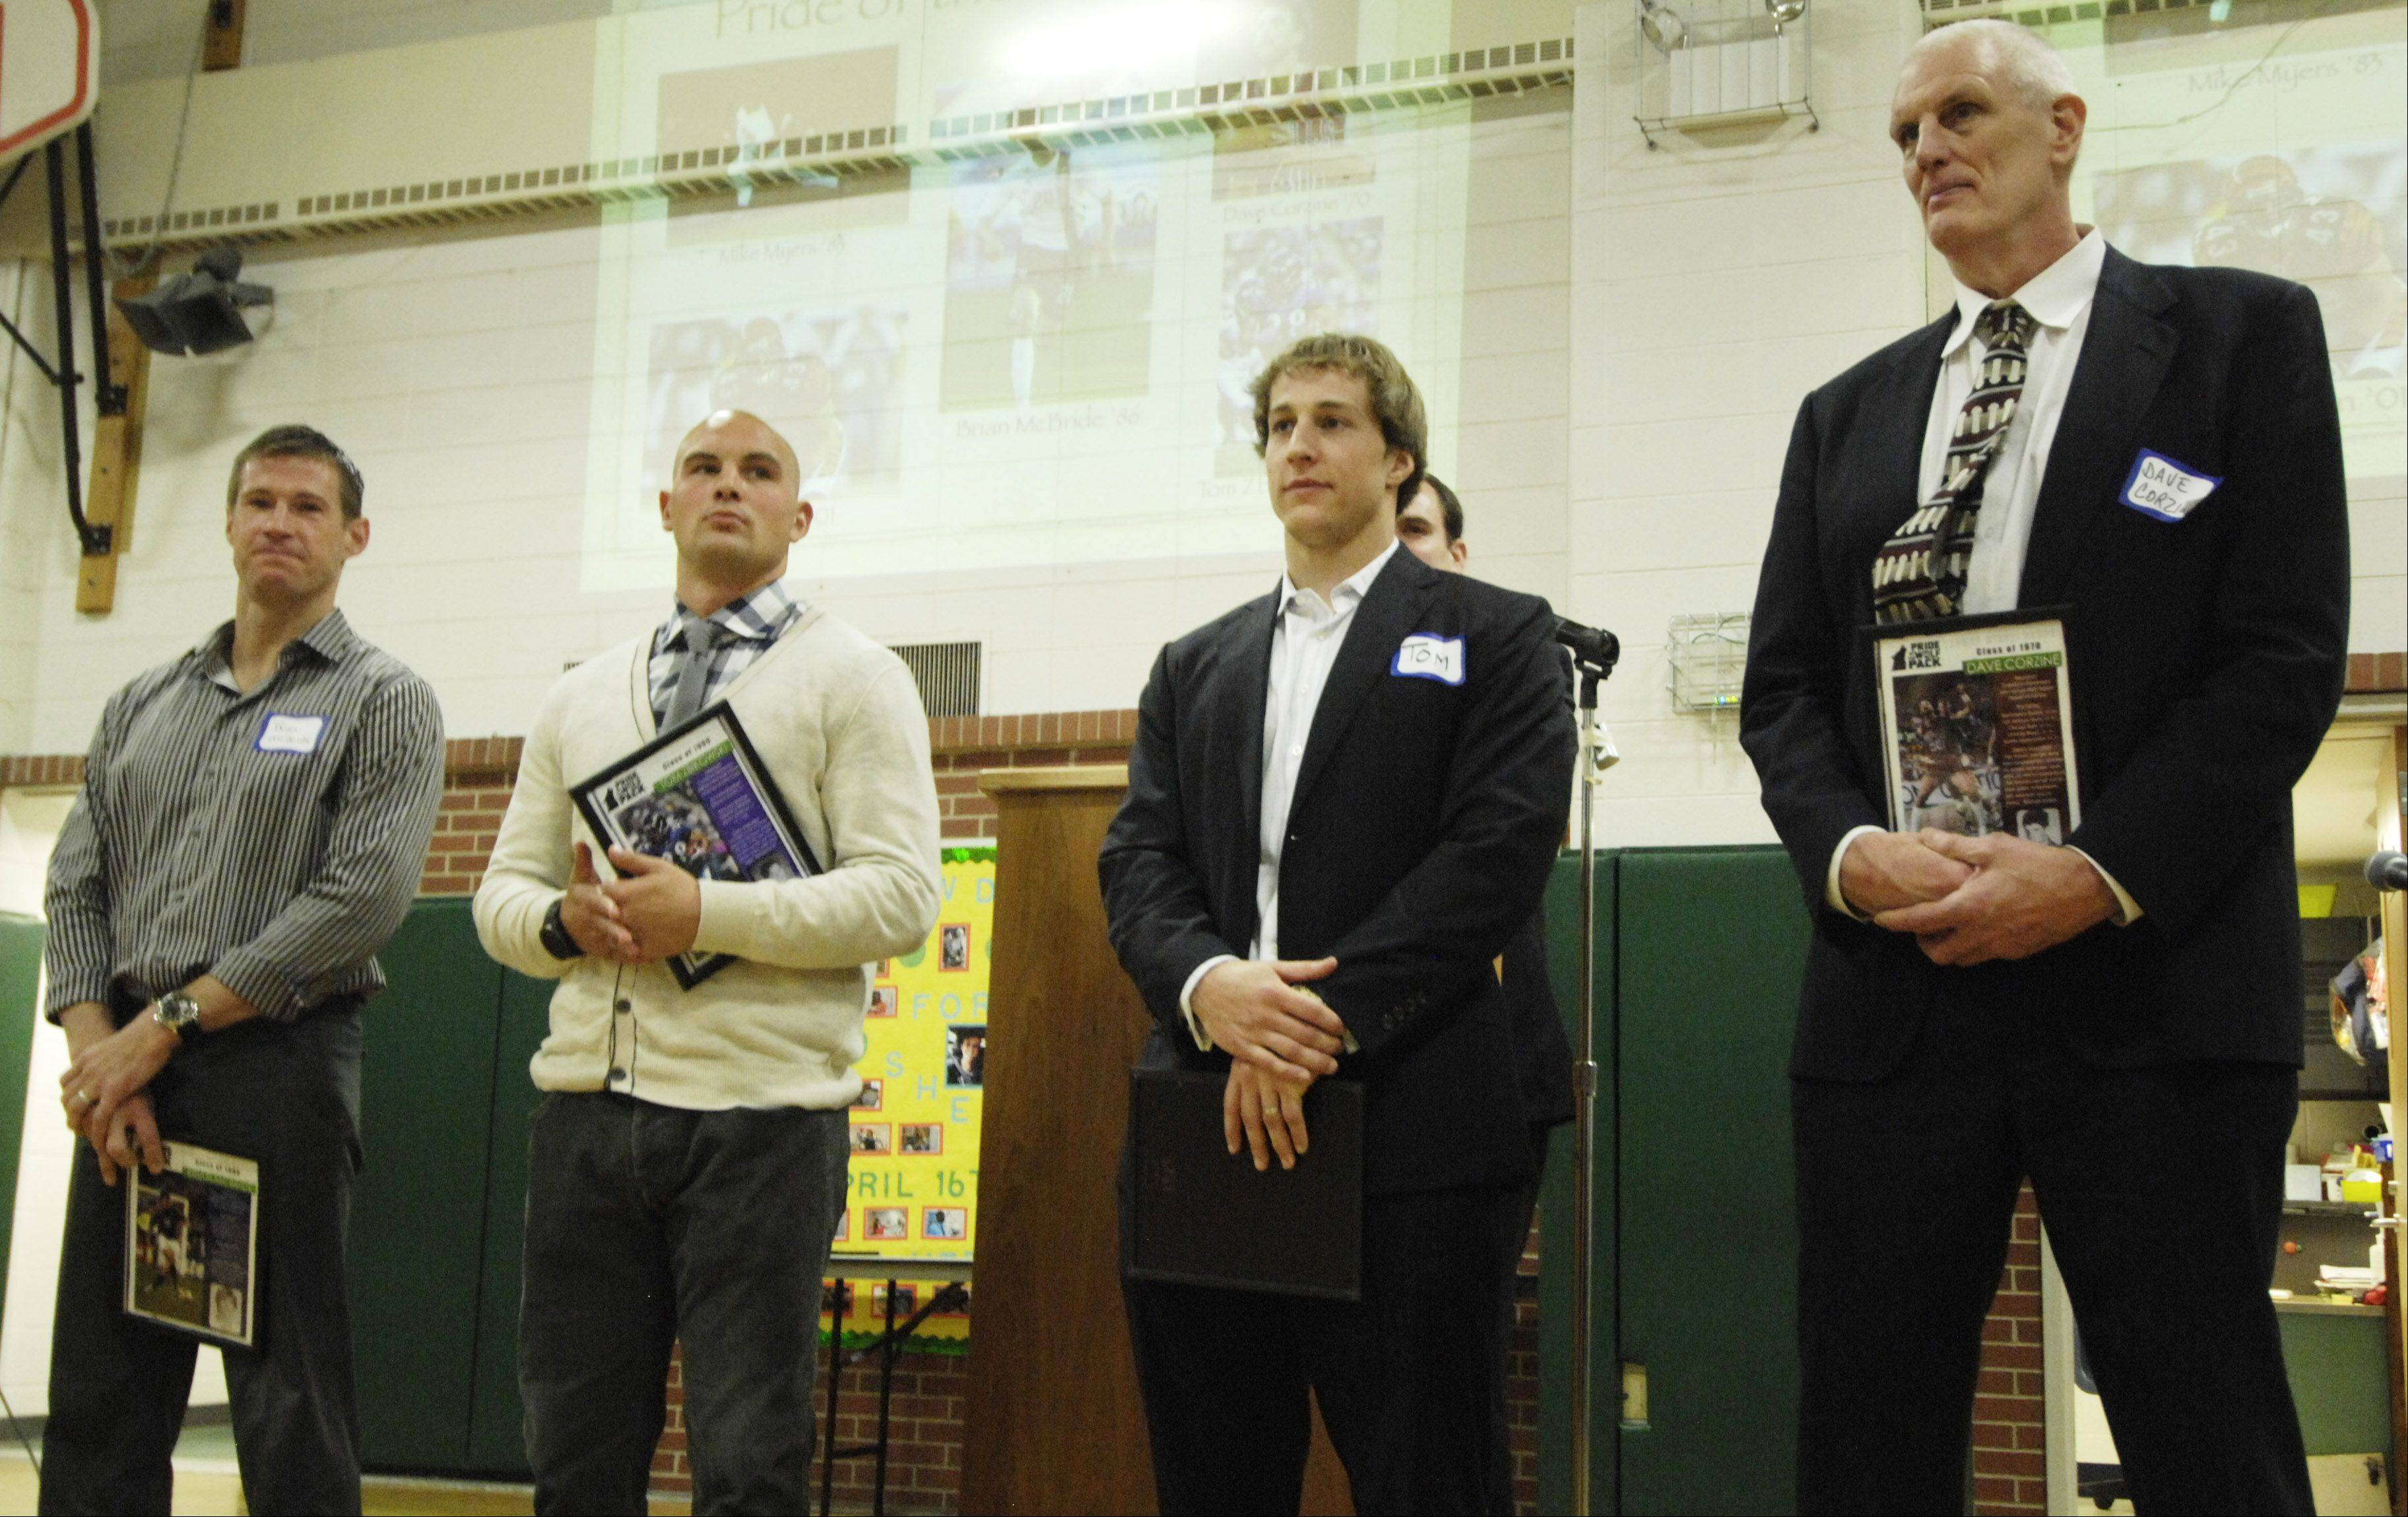 Left to right, Thomas Middle School alums Brian McBride, Tom Zbikowski, Tom Nelson and Dave Corzine stand together as they are honored for their athletic success during an assembly at the Arlington Heights school Thursday. Baseball standout Mike Myers was also honored but was unable to attend.